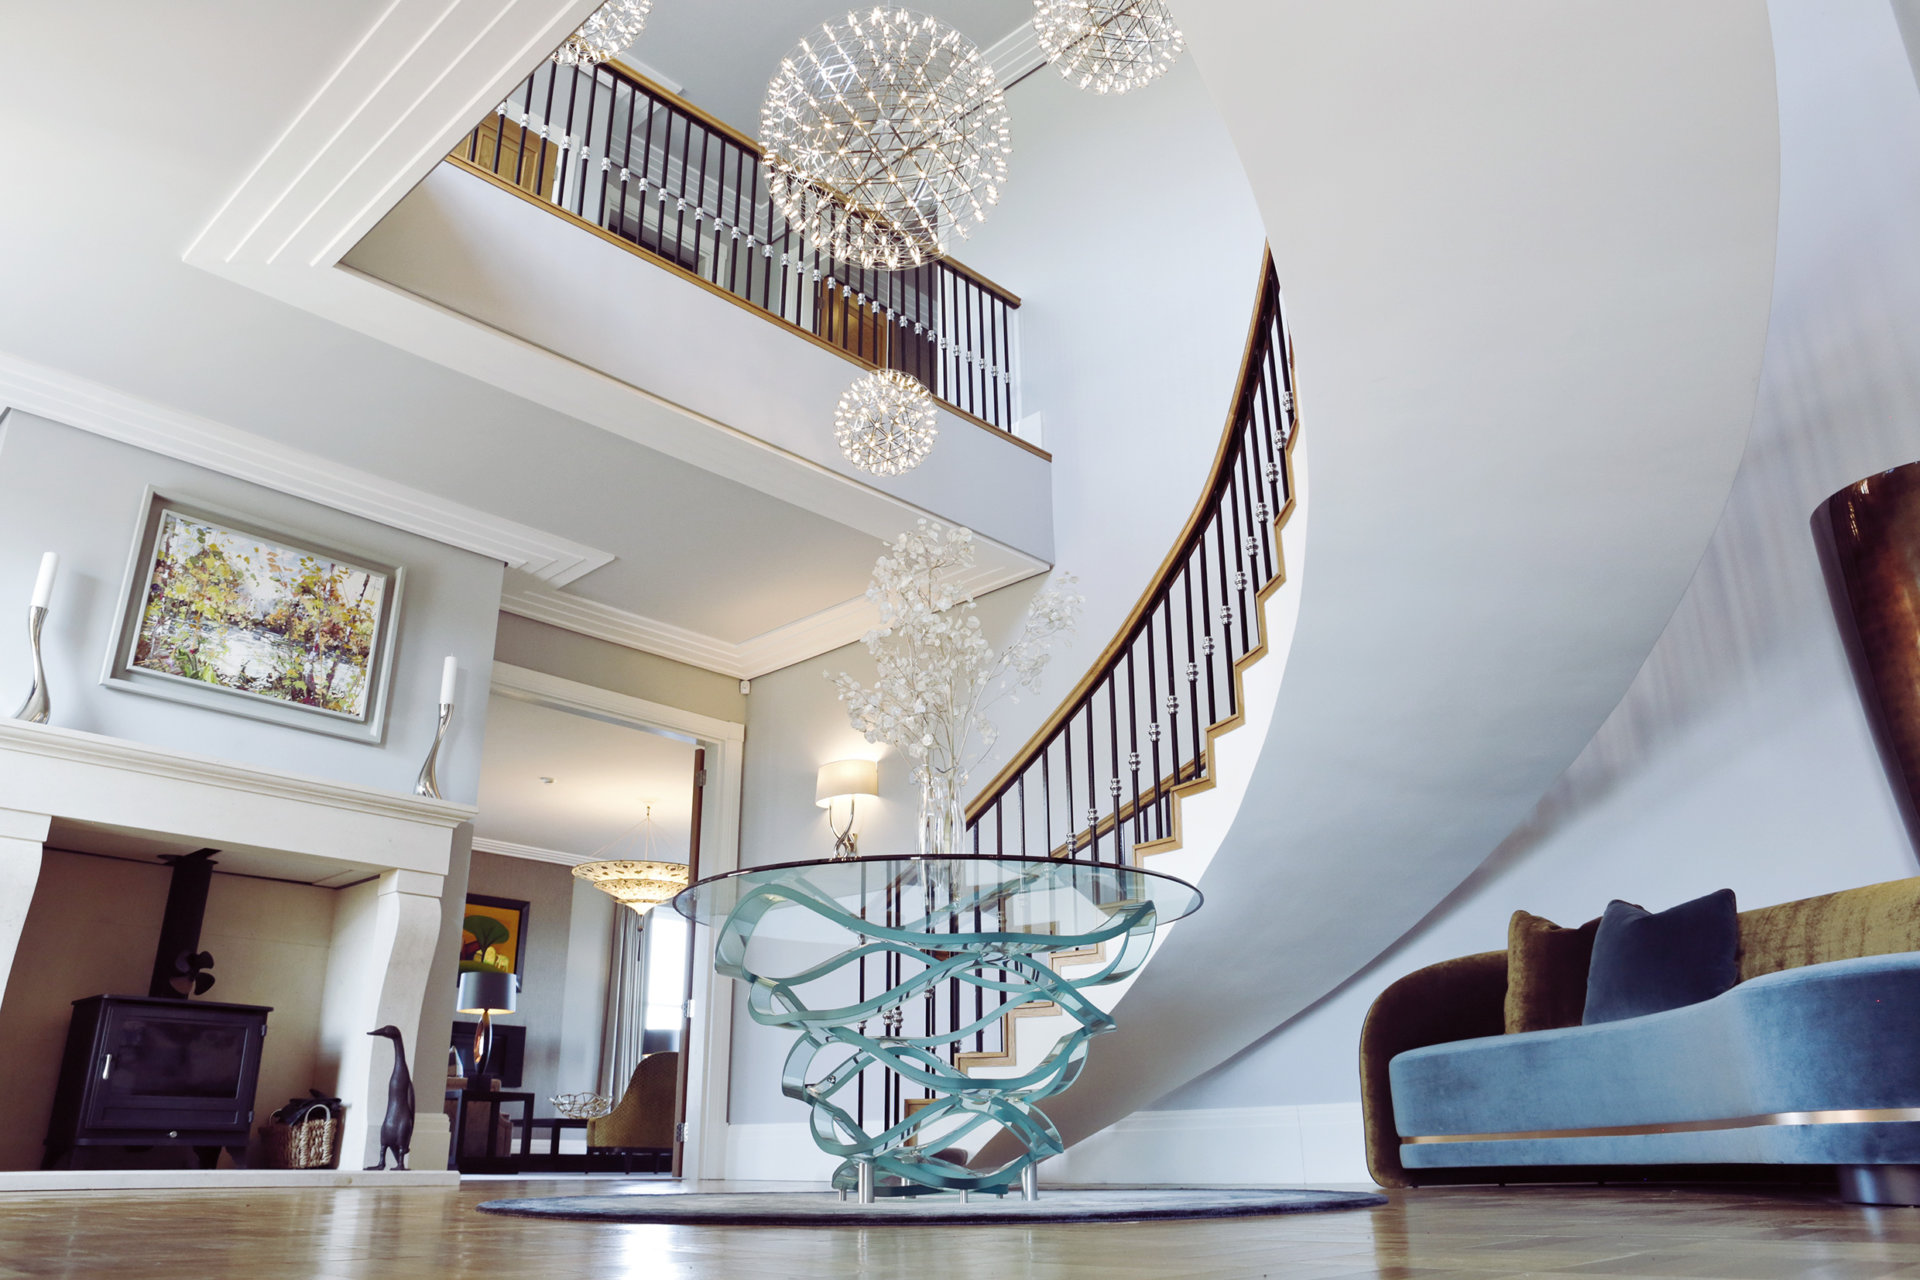 Peter_Staunton_Interior_Design_Flint_Hall_Entrance_Leamington_Spa_Warwickshire